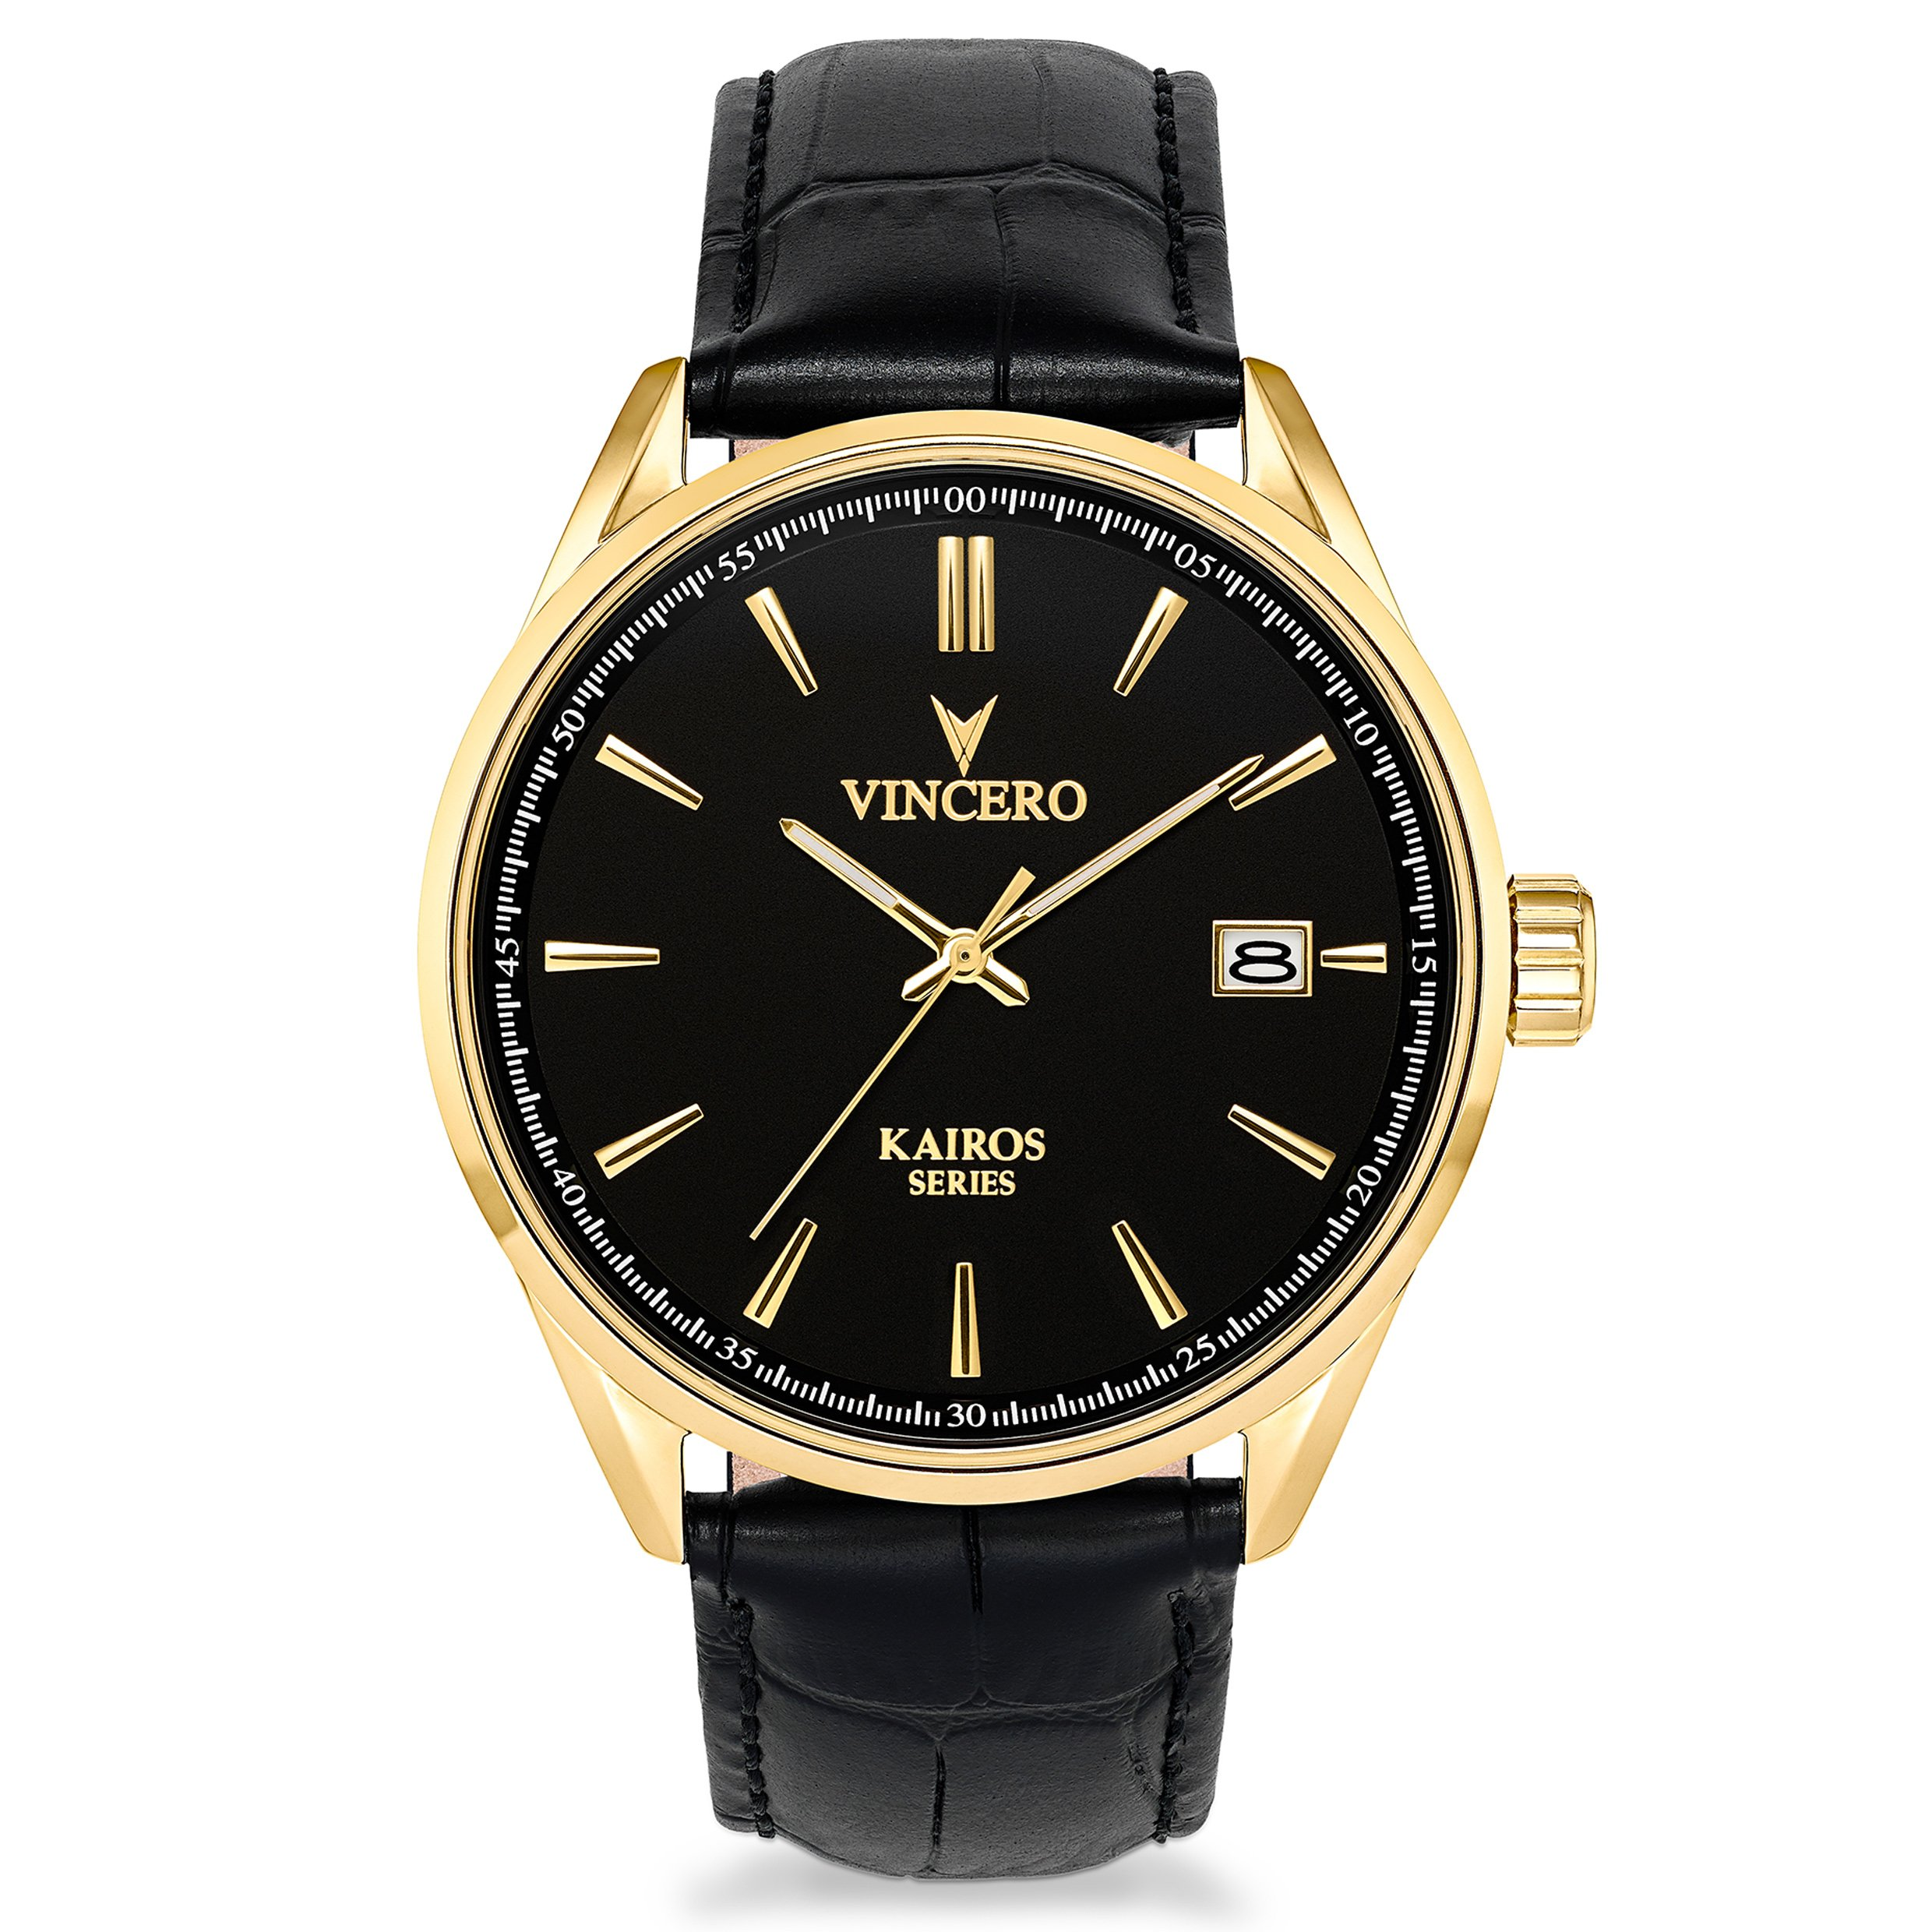 Vincero Men's Kairos Watch - Black/Gold with Leather Band by Vincero